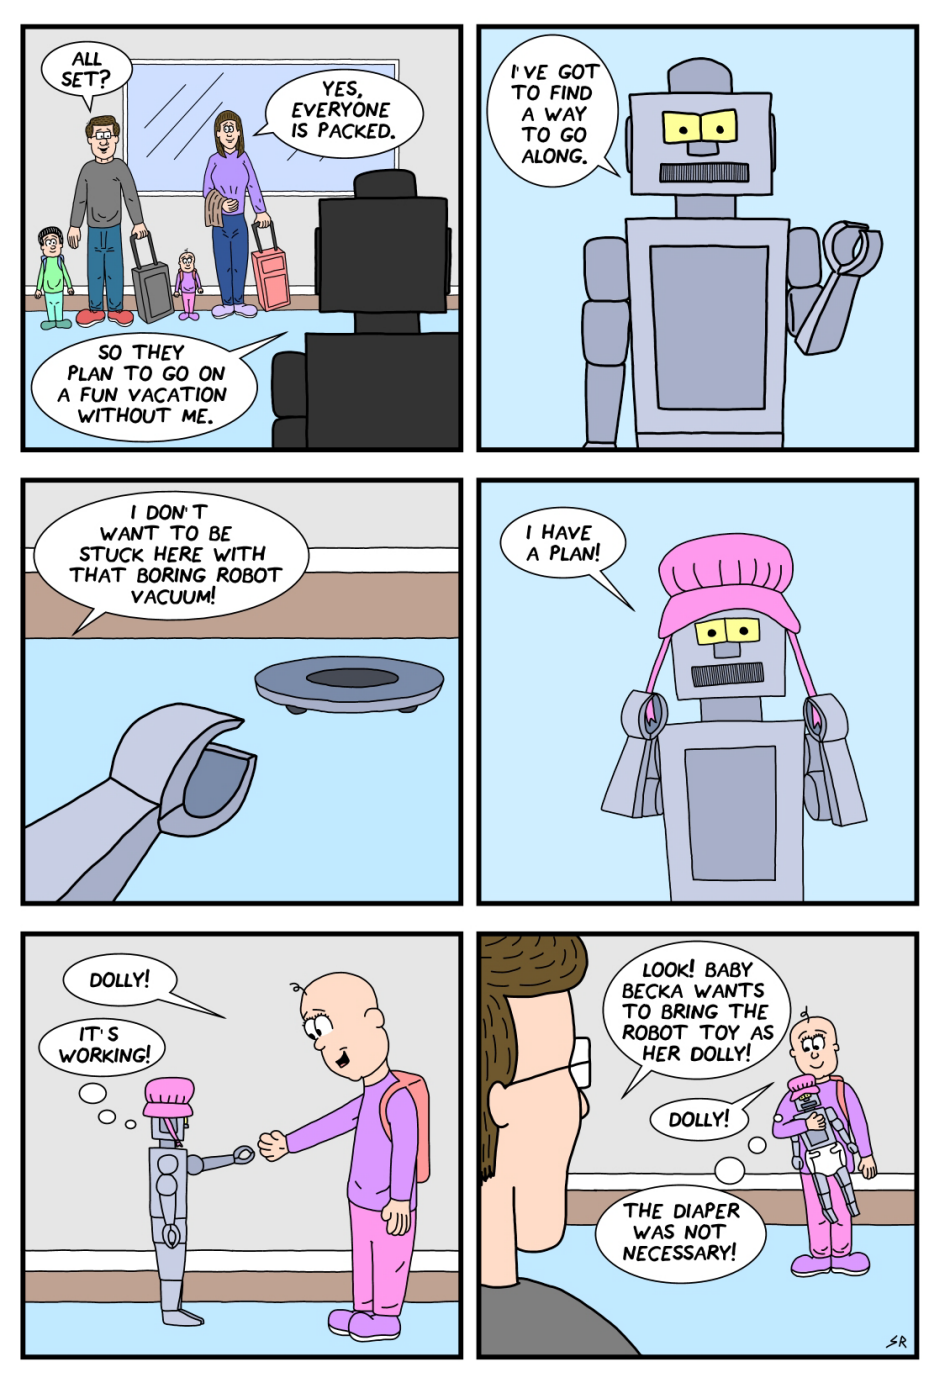 Don't forget the robot